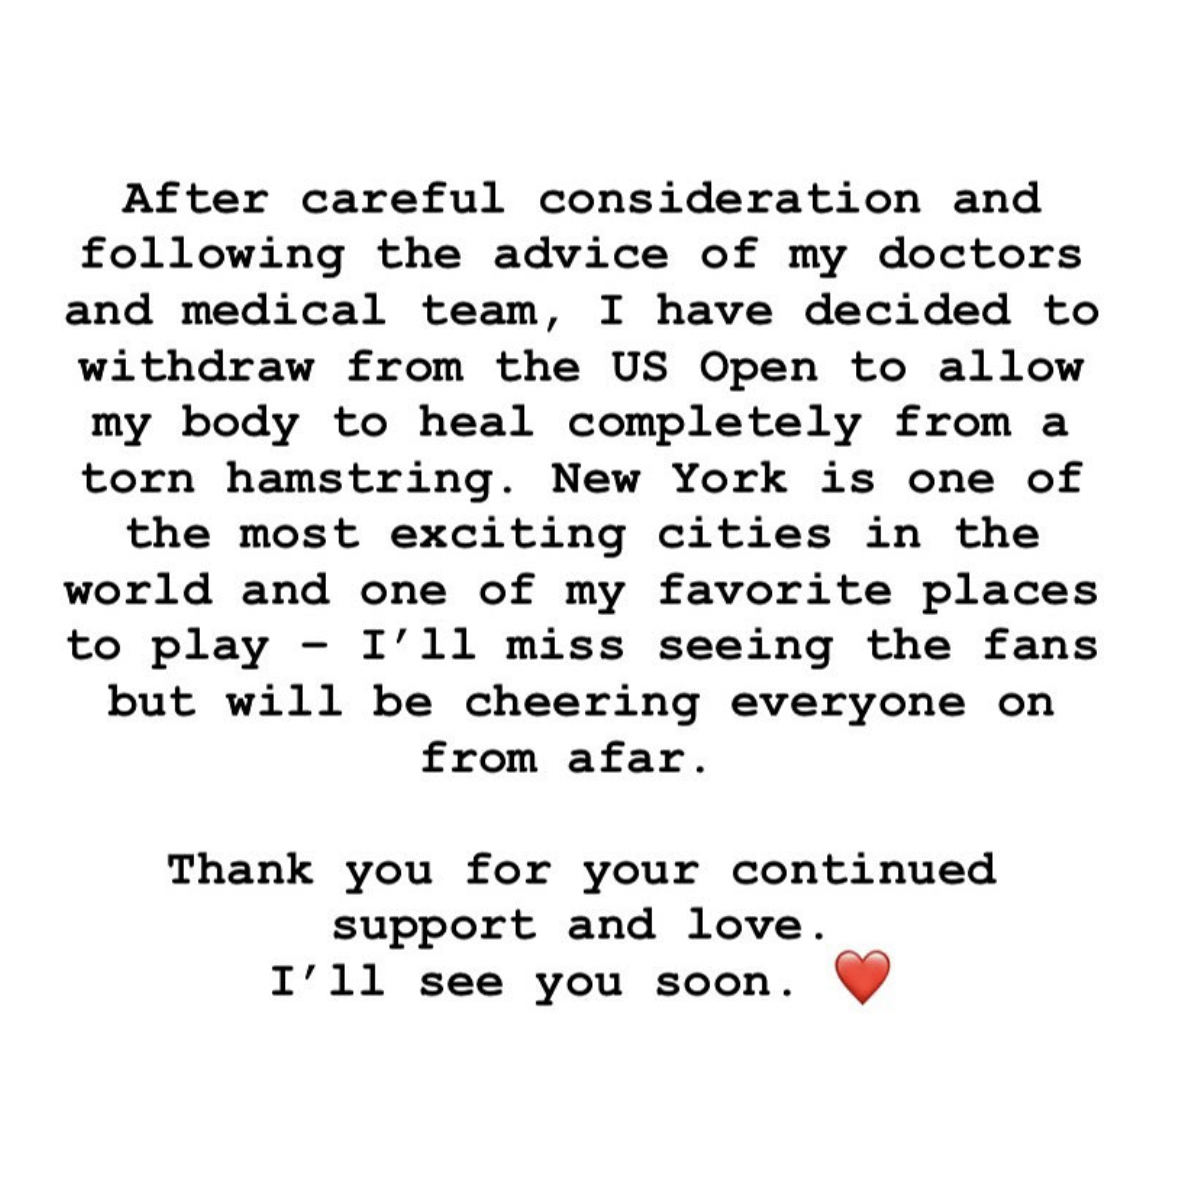 Serena's statement on Instagram about her withdrawal